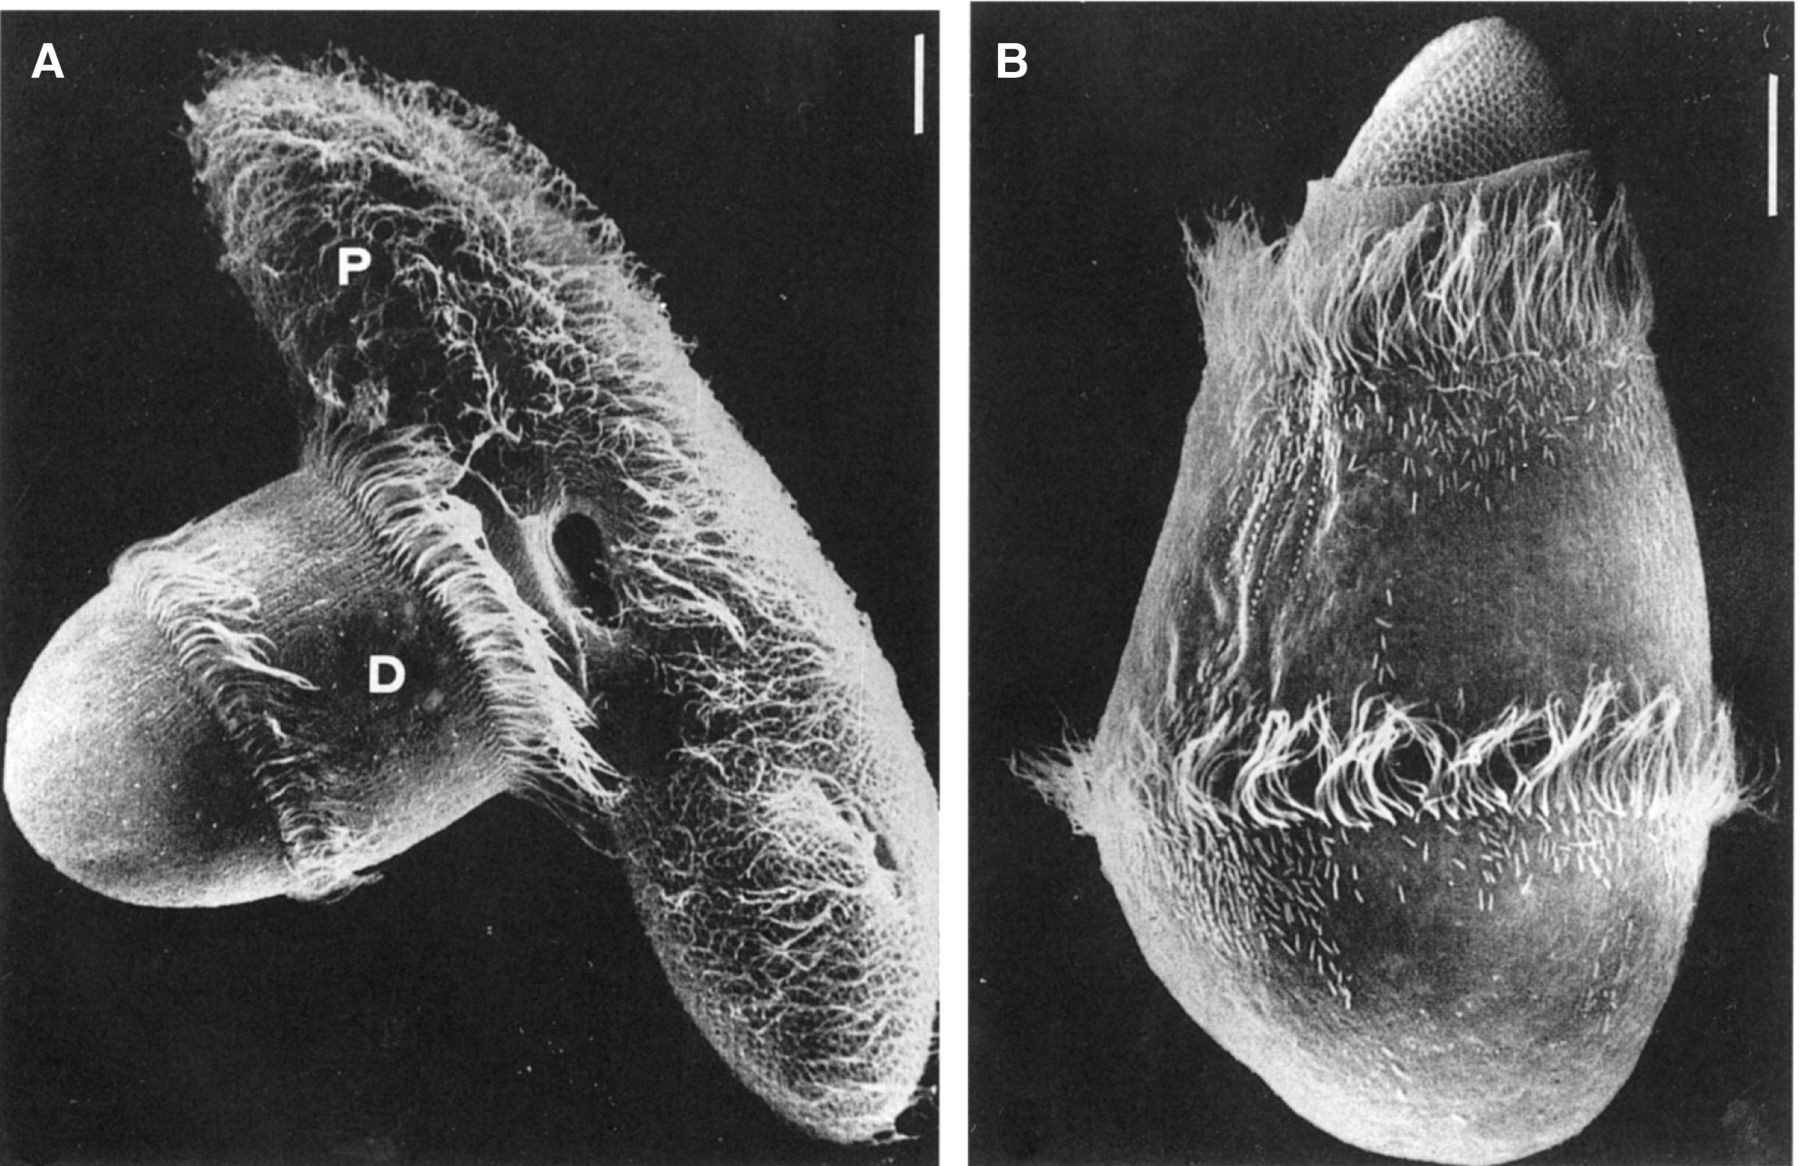 Just out | It's a protist-eat-protist world: recalcitrance, predation, and evolution in the Tonian–Cryogenian ocean @Emerging Topics in Life Sciences